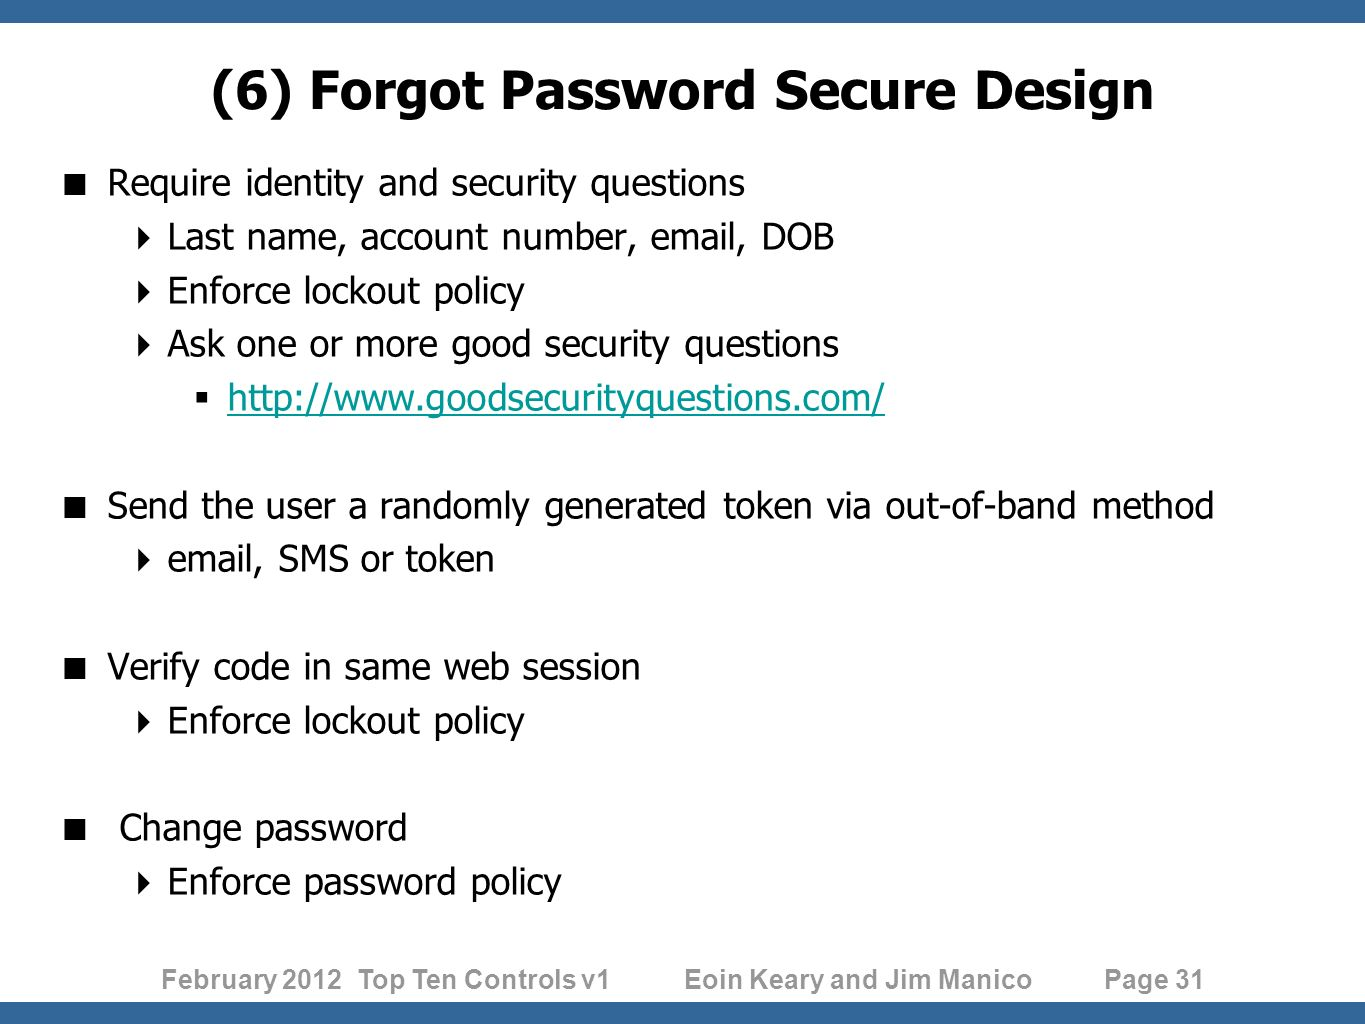 February 2012 Top Ten Controls v1 Eoin Keary and Jim Manico Page 31 Require identity and security questions Last name, account number,  , DOB Enforce lockout policy Ask one or more good security questions     Send the user a randomly generated token via out-of-band method  , SMS or token Verify code in same web session Enforce lockout policy Change password Enforce password policy (6) Forgot Password Secure Design